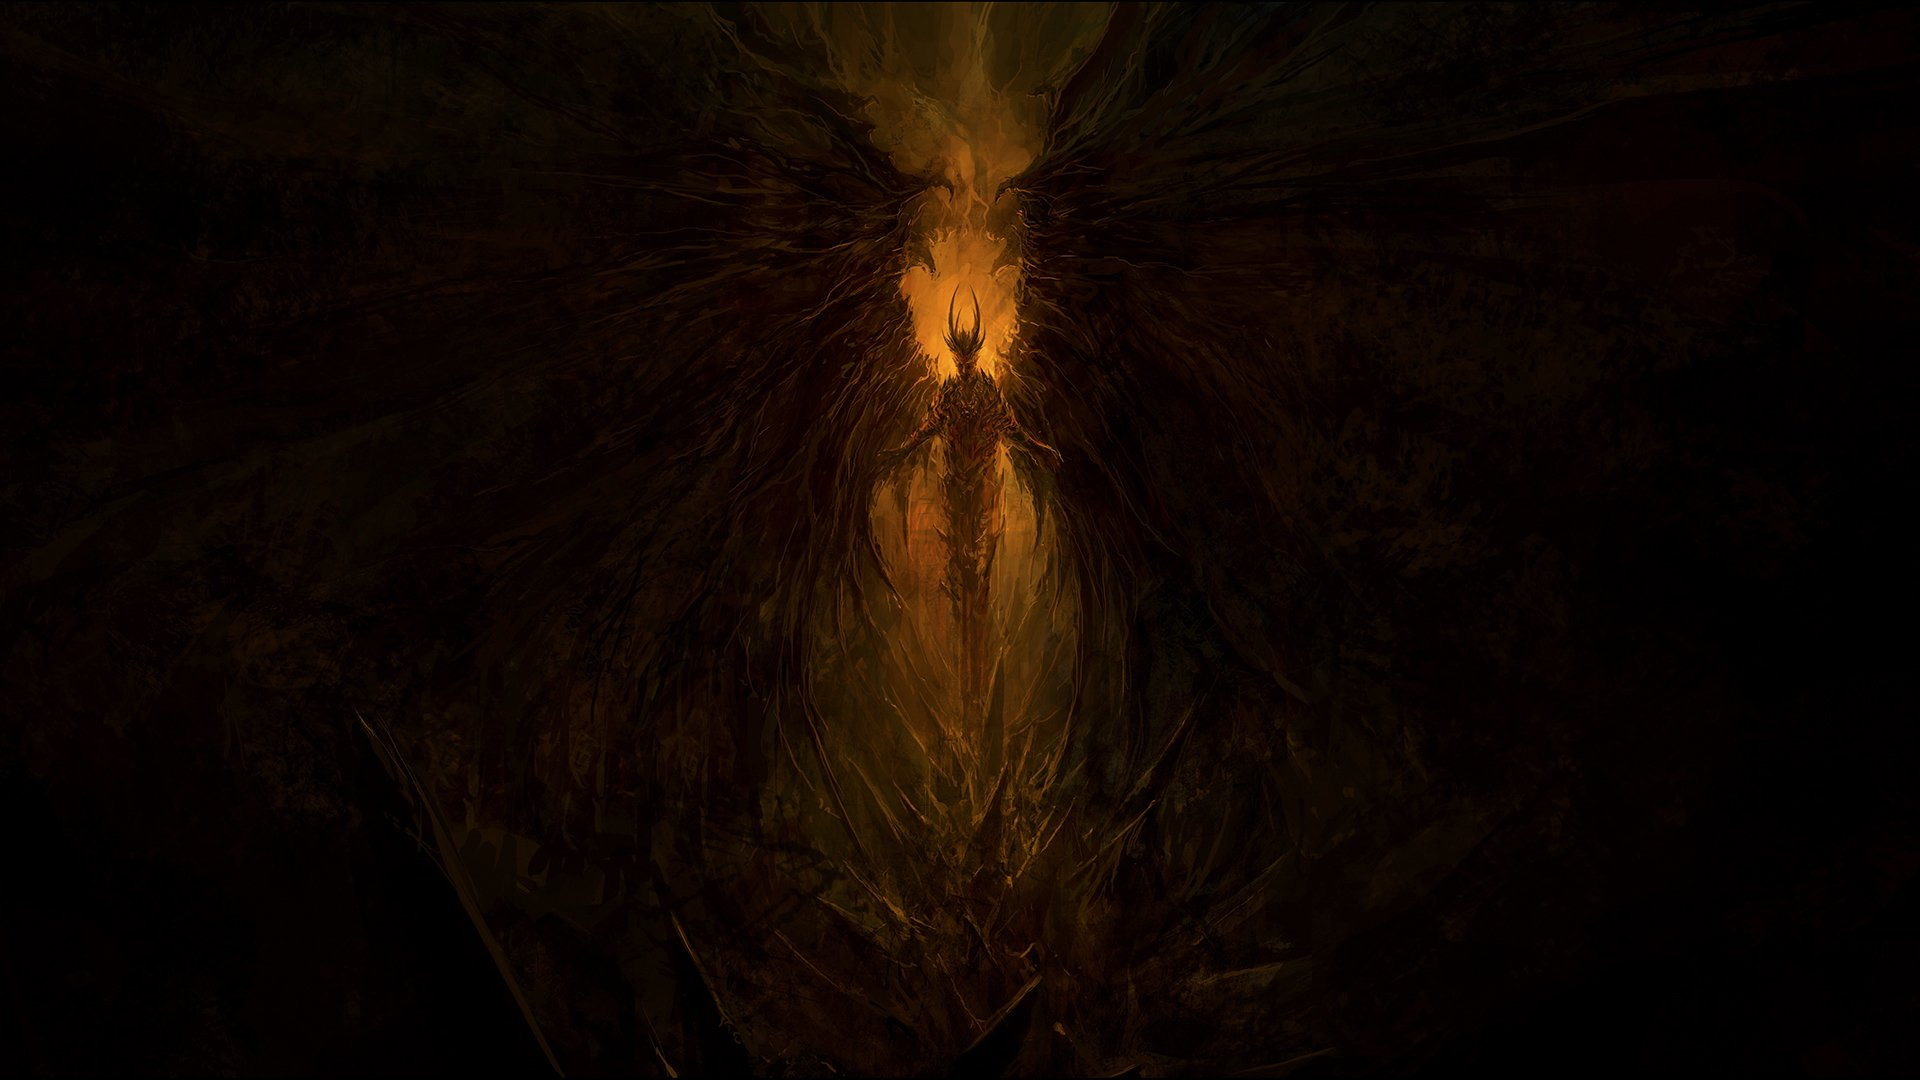 3 devil hd wallpapers | background images - wallpaper abyss